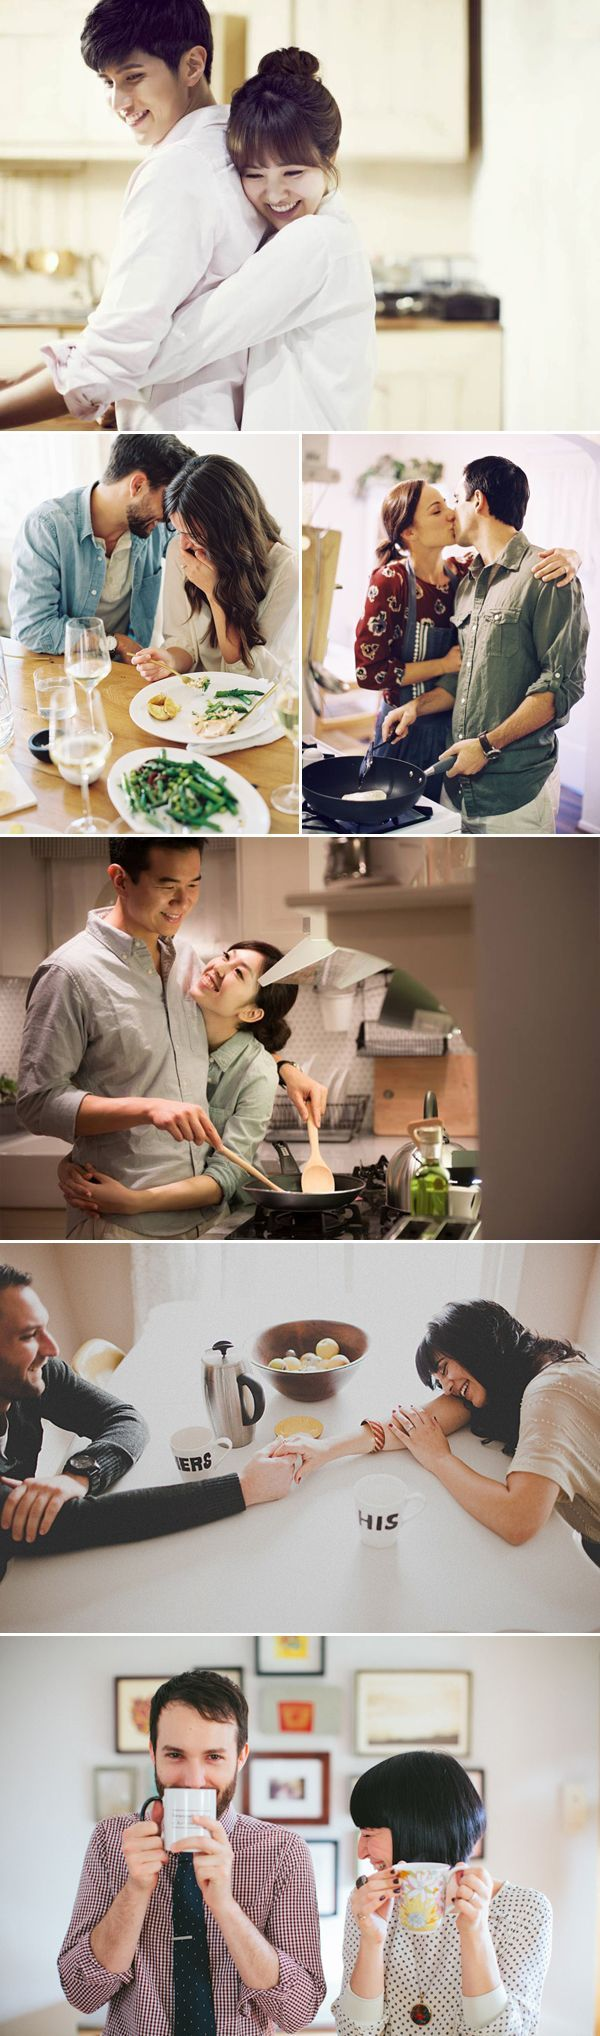 32 Sweet Home #Engagement Photo Ideas for #Couples.